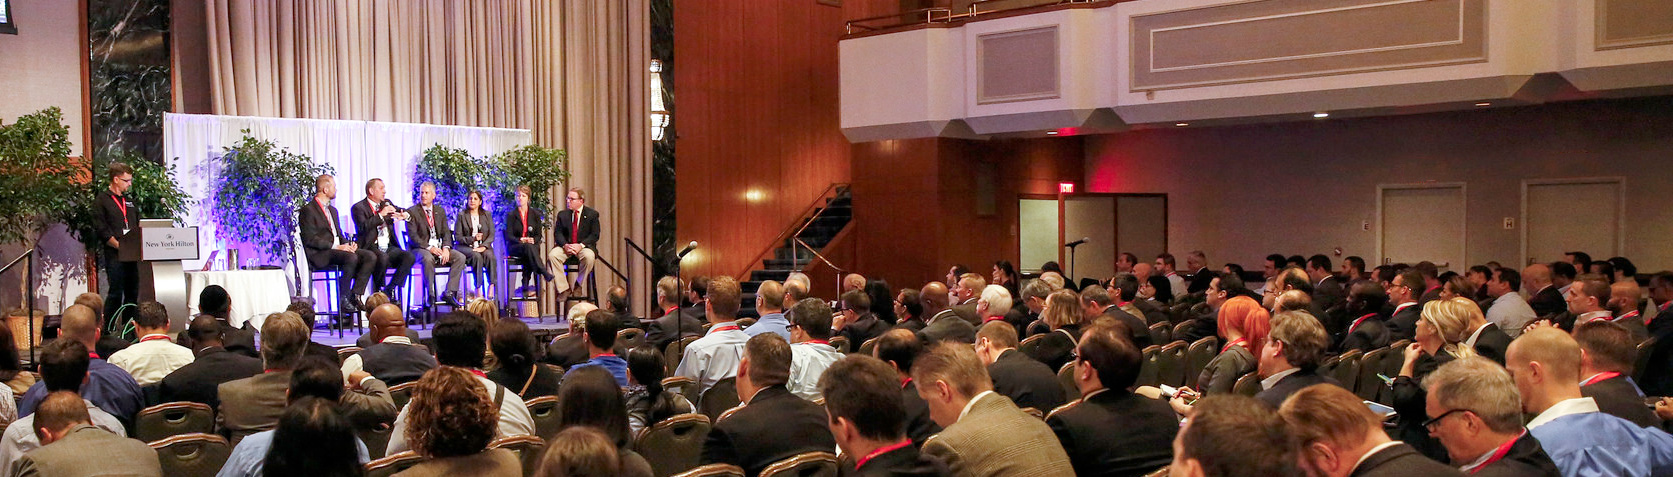 About Us Cyber Summit Usa The Official Cyber Security Summitcyber Summit Usa The Official Cyber Security Summit